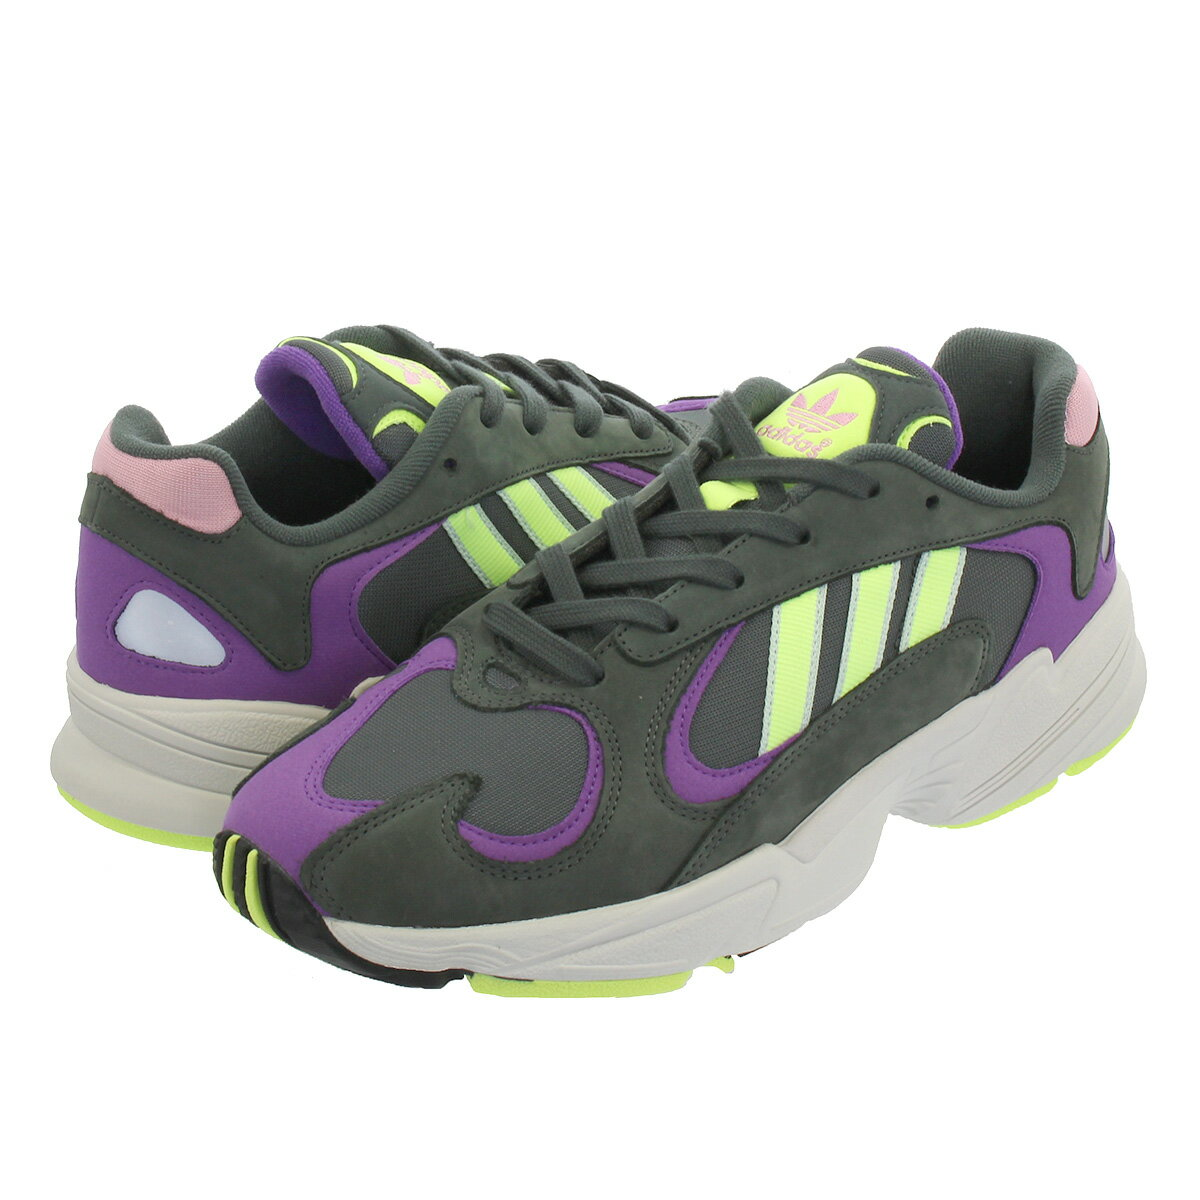 adidas YUNG-1 【adidas Originals】 アディダス ヤング 1 LEGEND IVY/HIGH RESO YELLOW/ACTIVE PURPLE bd7655